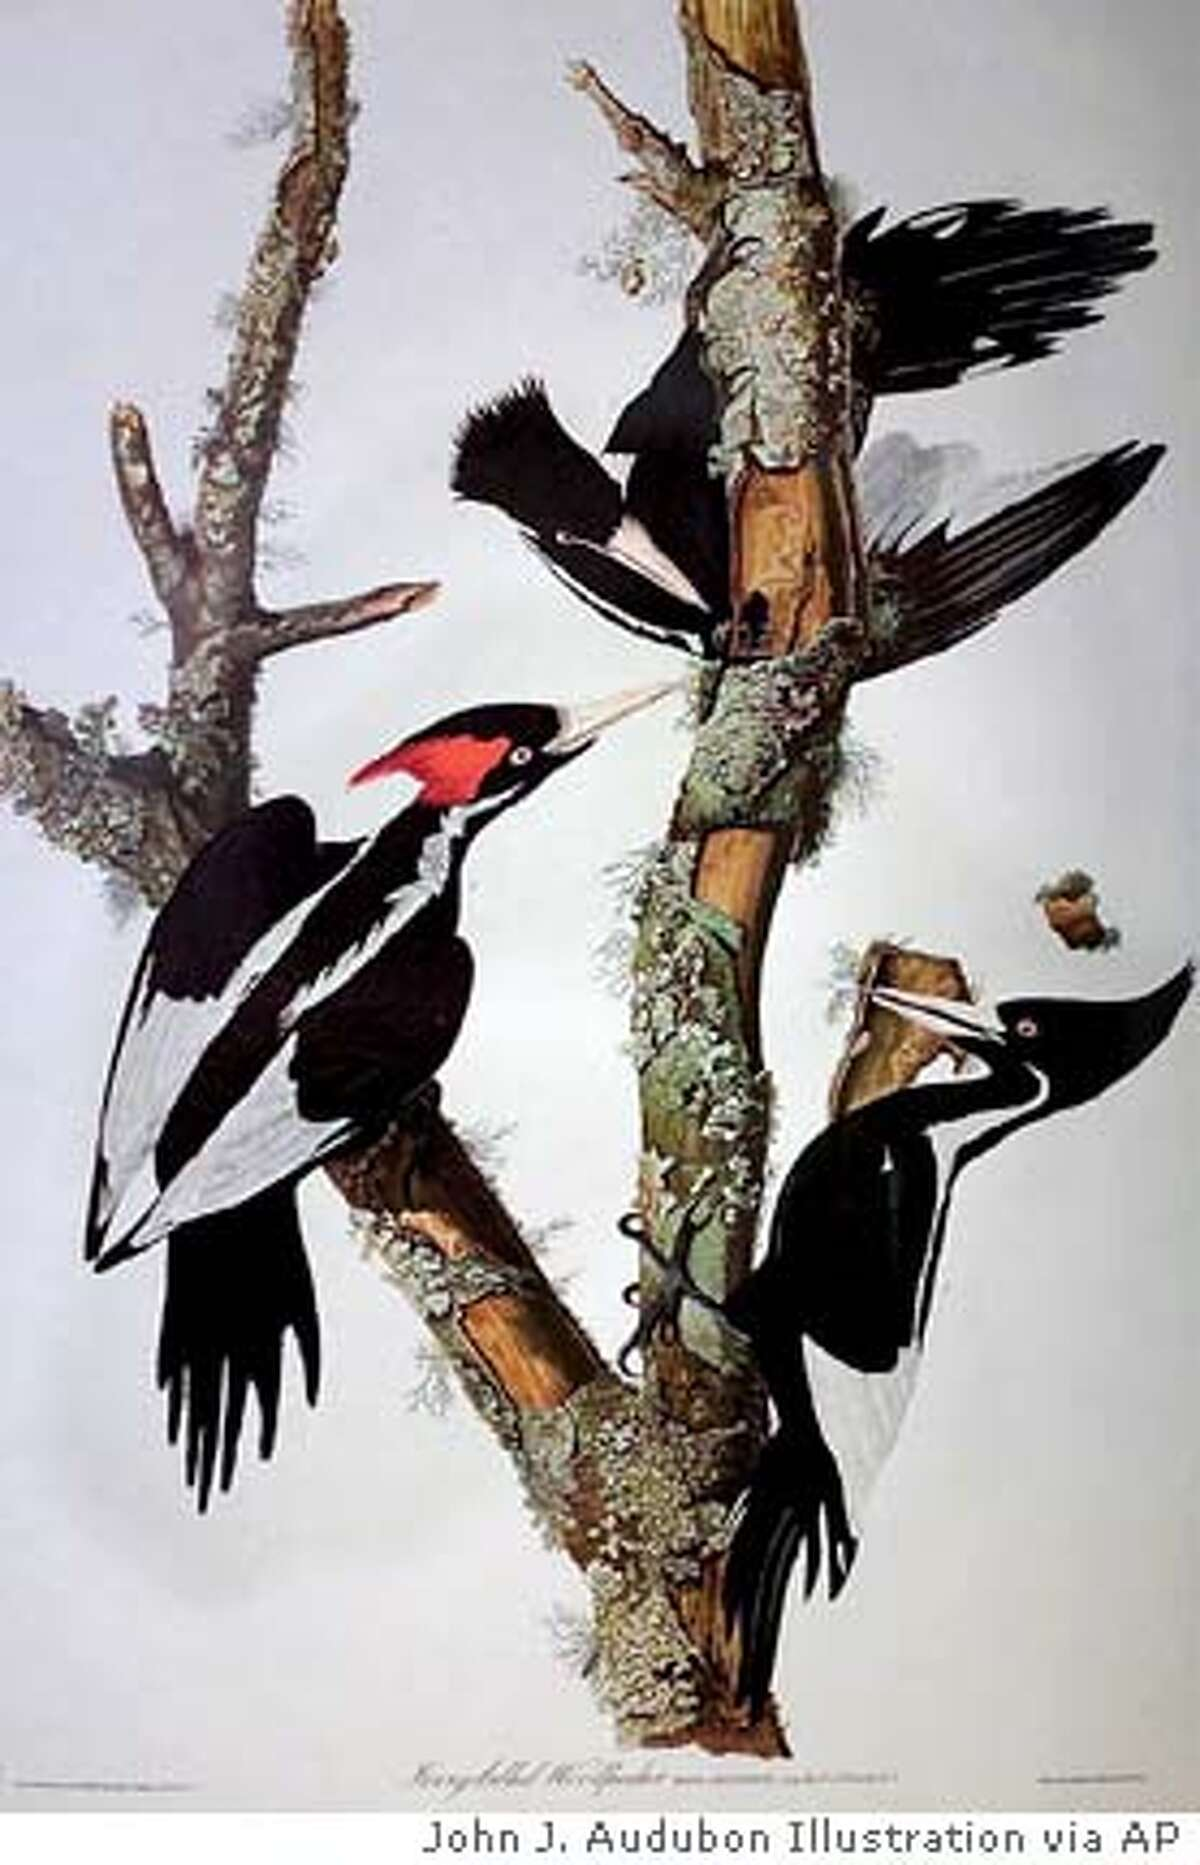 **FILE** This print showing Ivory-billed Woodpeckers, from an engraving by John J. Audubon, was released by the Massachusetts Audubon Society in 2000. The ivory-billed woodpecker, thought to be extinct, has reportedly been sighted in eastern Arkansas, a Cornell University researcher says in a paper released Thursday, April 28, 2005. John W. Fitzpatrick of Cornell University said there have been several independent sightings of a bird that appears to be an ivory-billed woodpecker. (AP Photo/Massachusetts Audubon Society, File)